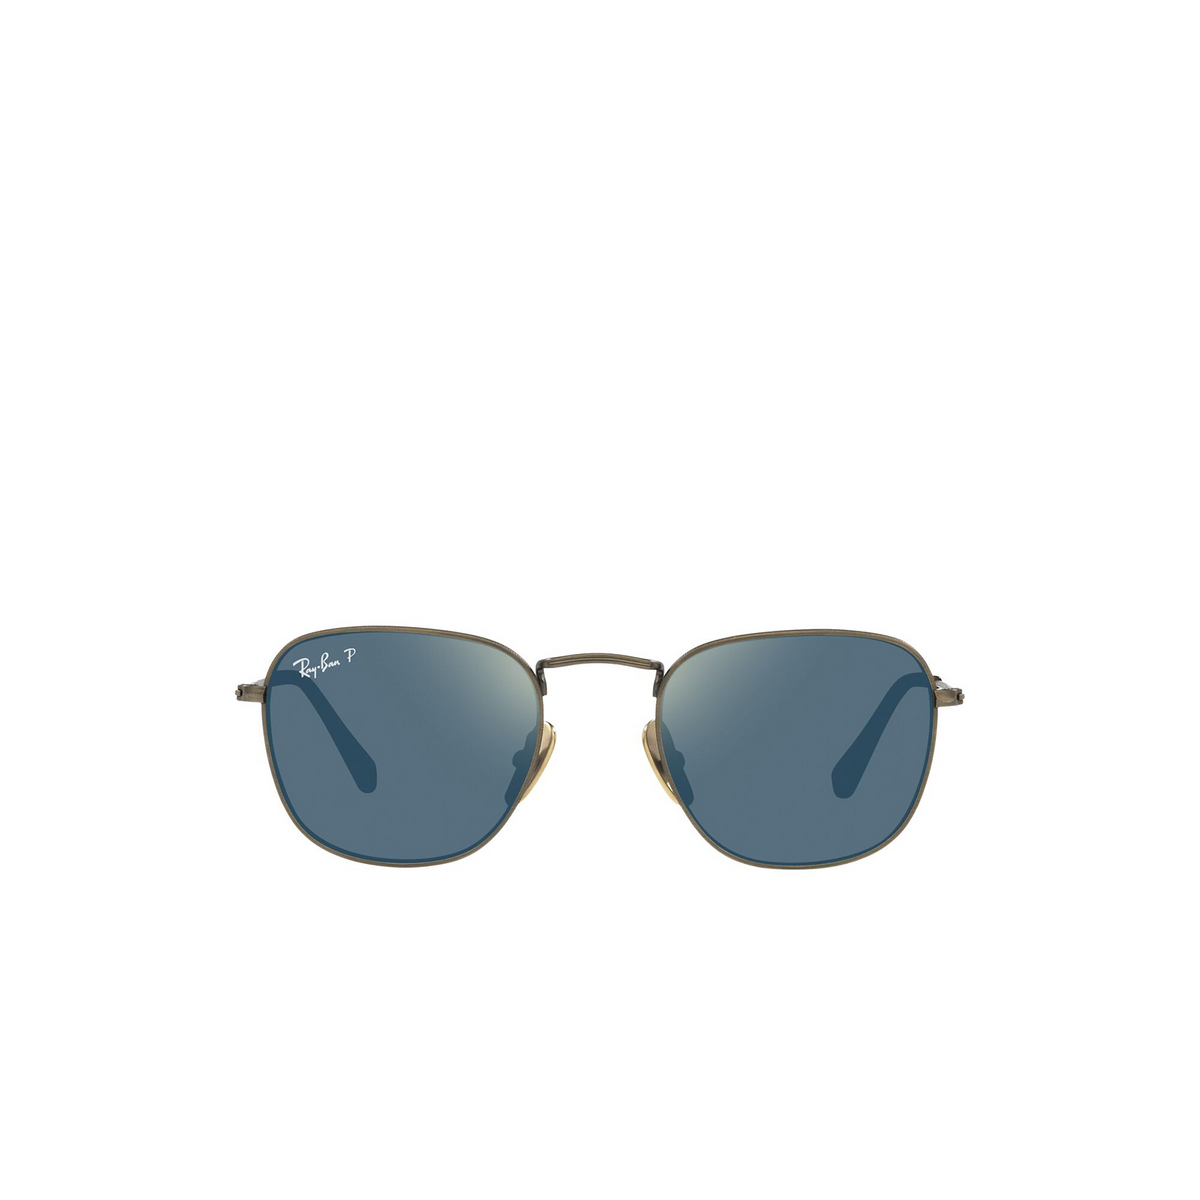 Ray-Ban® Square Sunglasses: Frank RB8157 color Demigloss Antique Gold 9207T0 - front view.